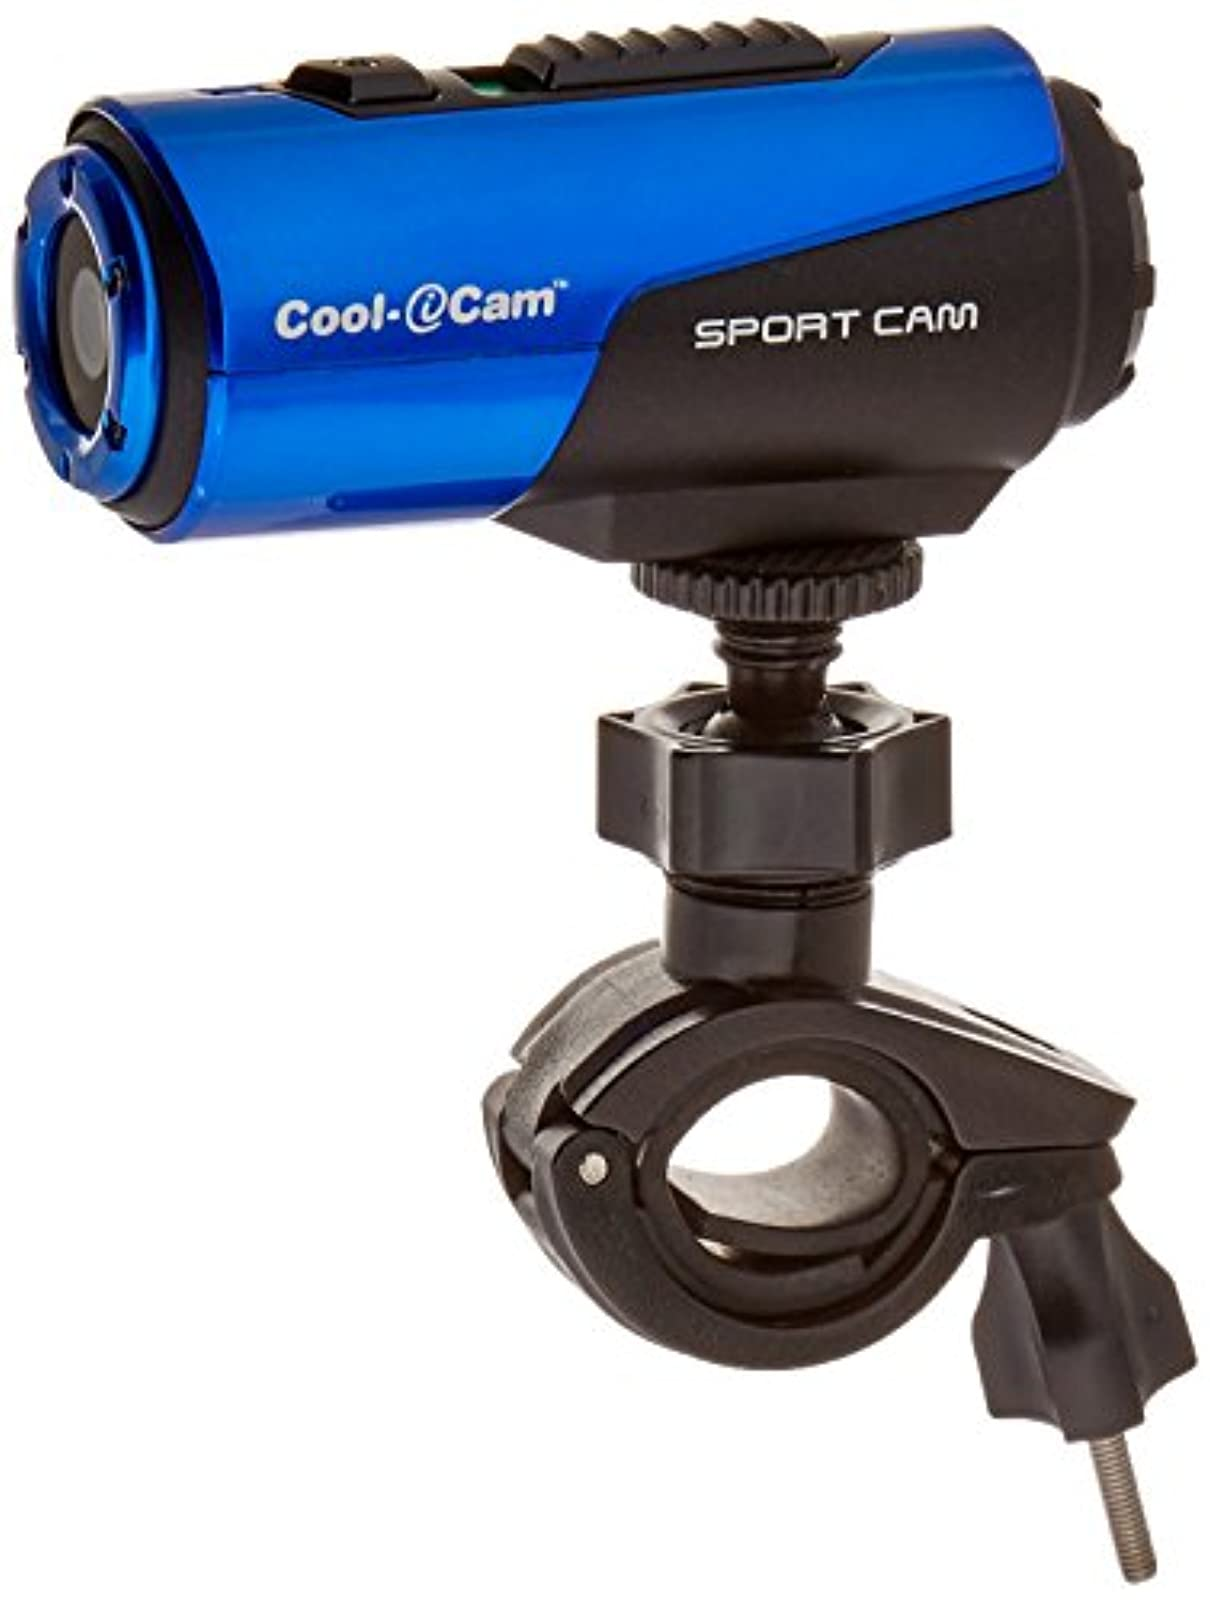 ION Cool-Icam S3000B Waterproof Action Camcorder With 720P HD Video The Perfect